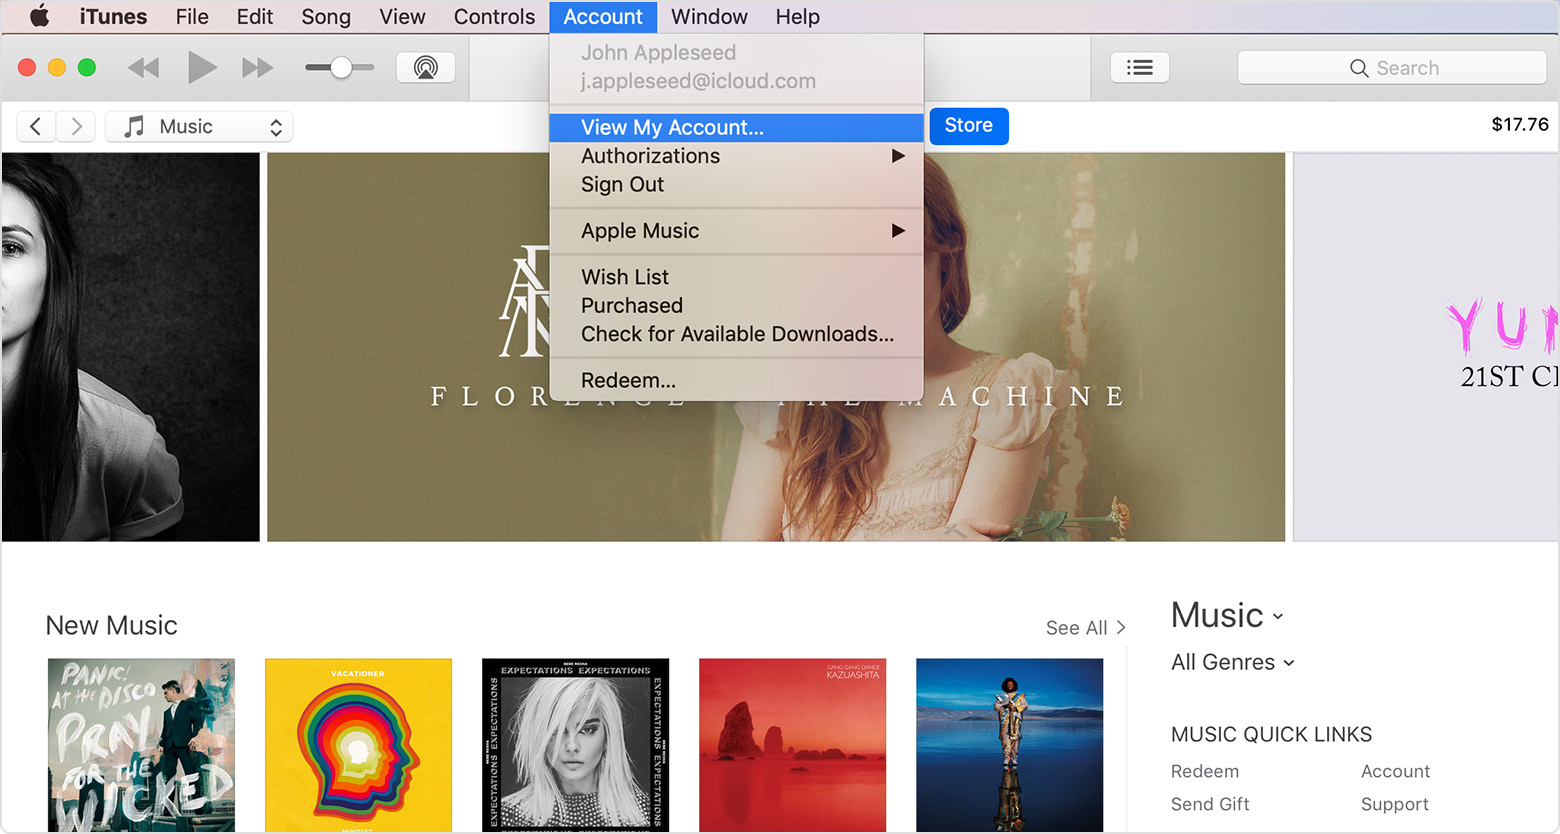 The Account menu in iTunes with View My Account selected.